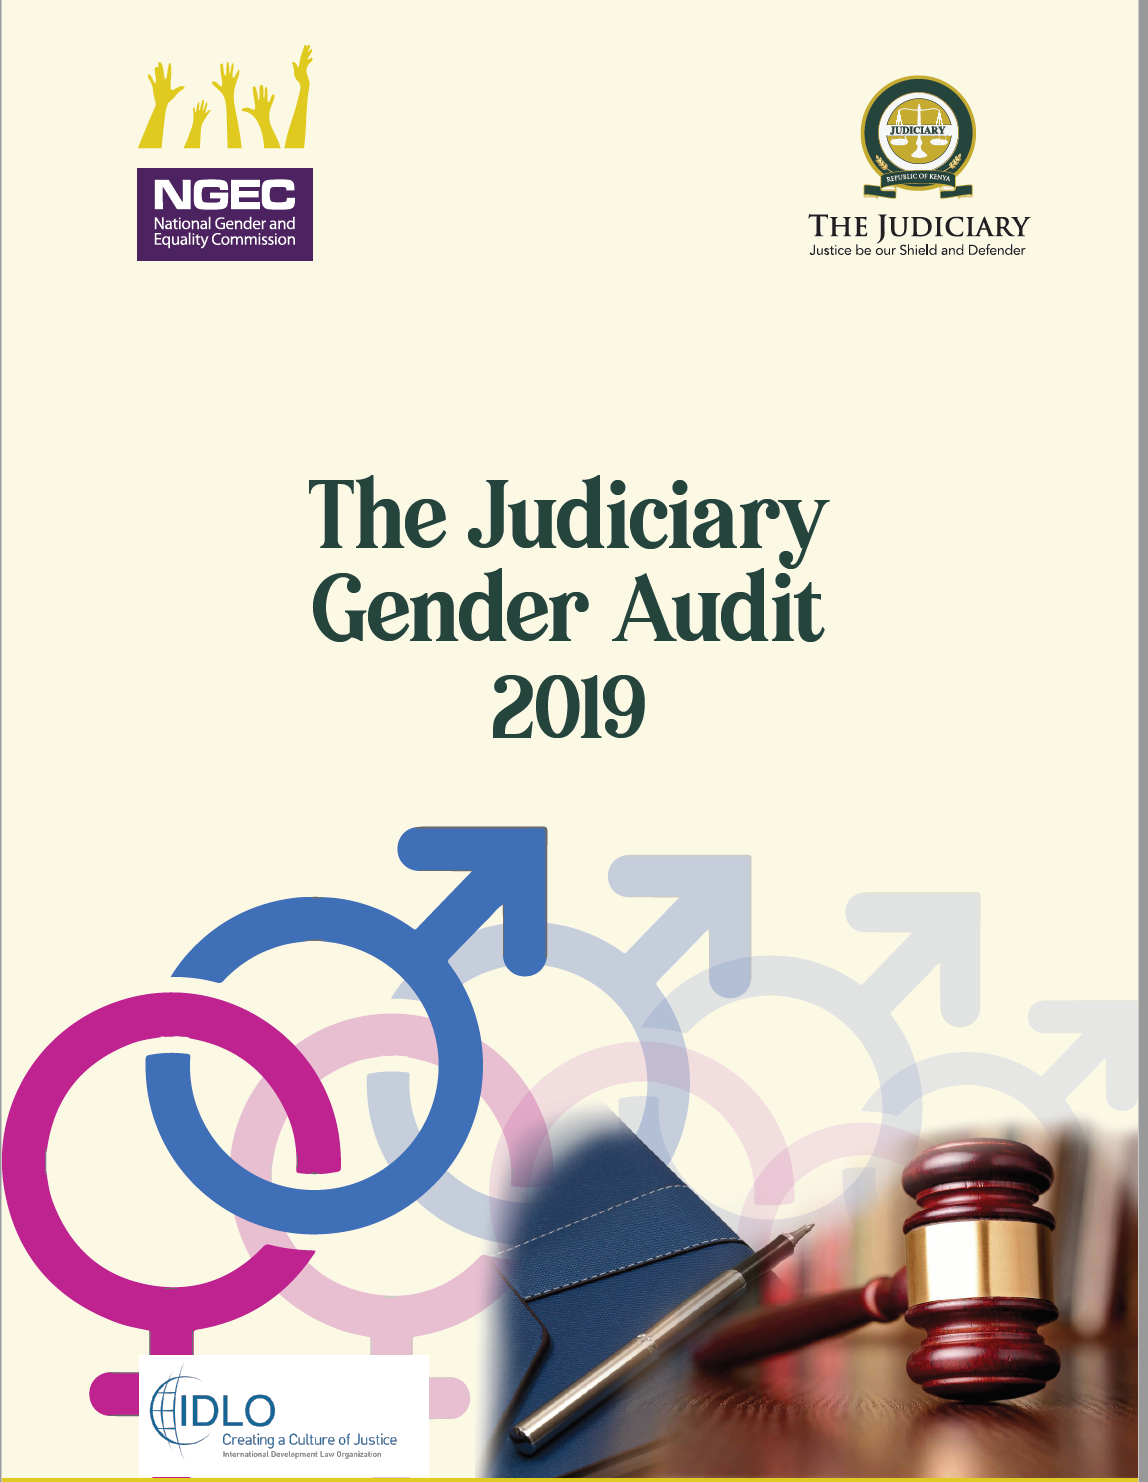 The Judiciary Gender Audit 2019